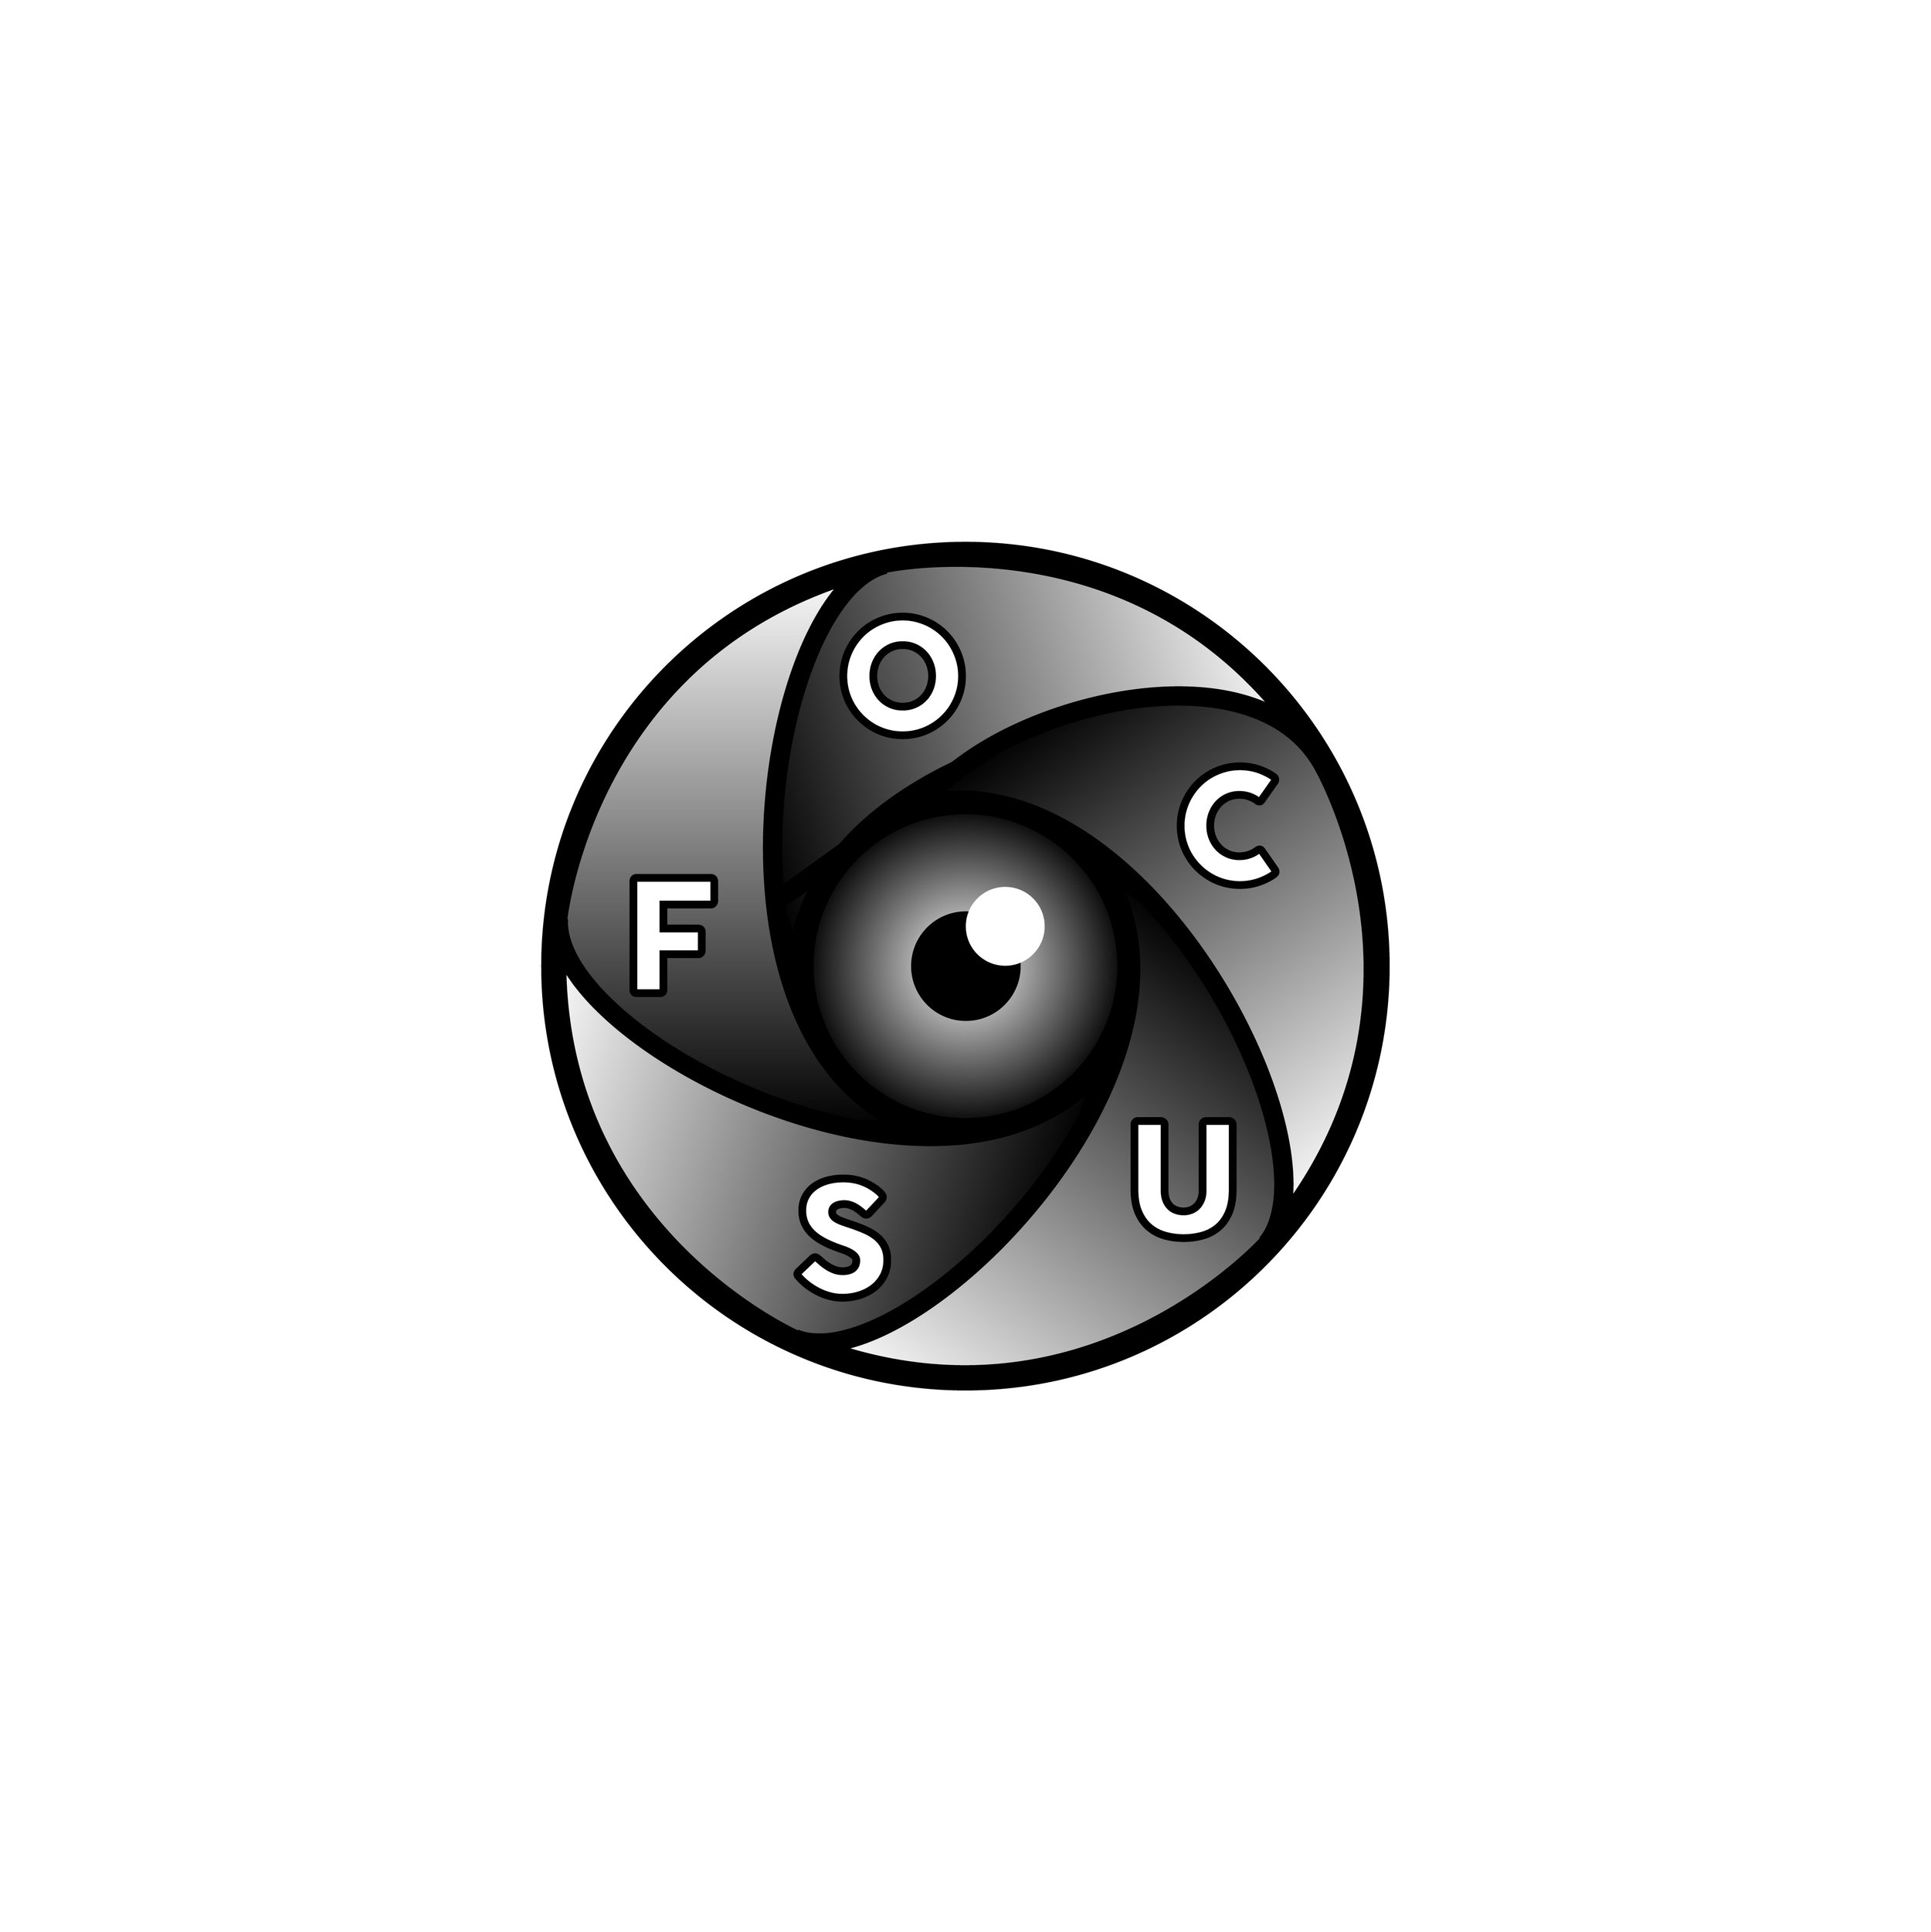 focuseye-07.jpg